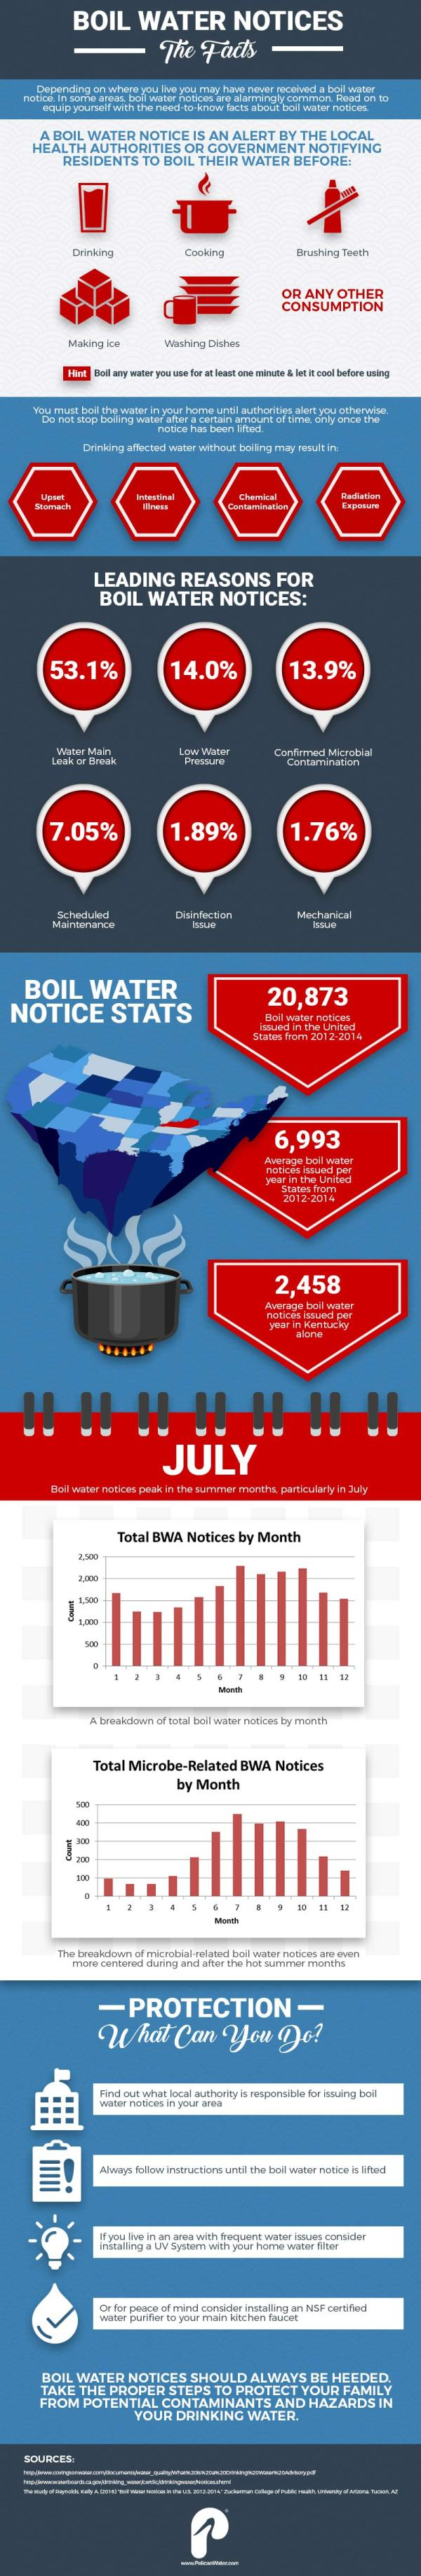 Boil Water Alerts Infographic